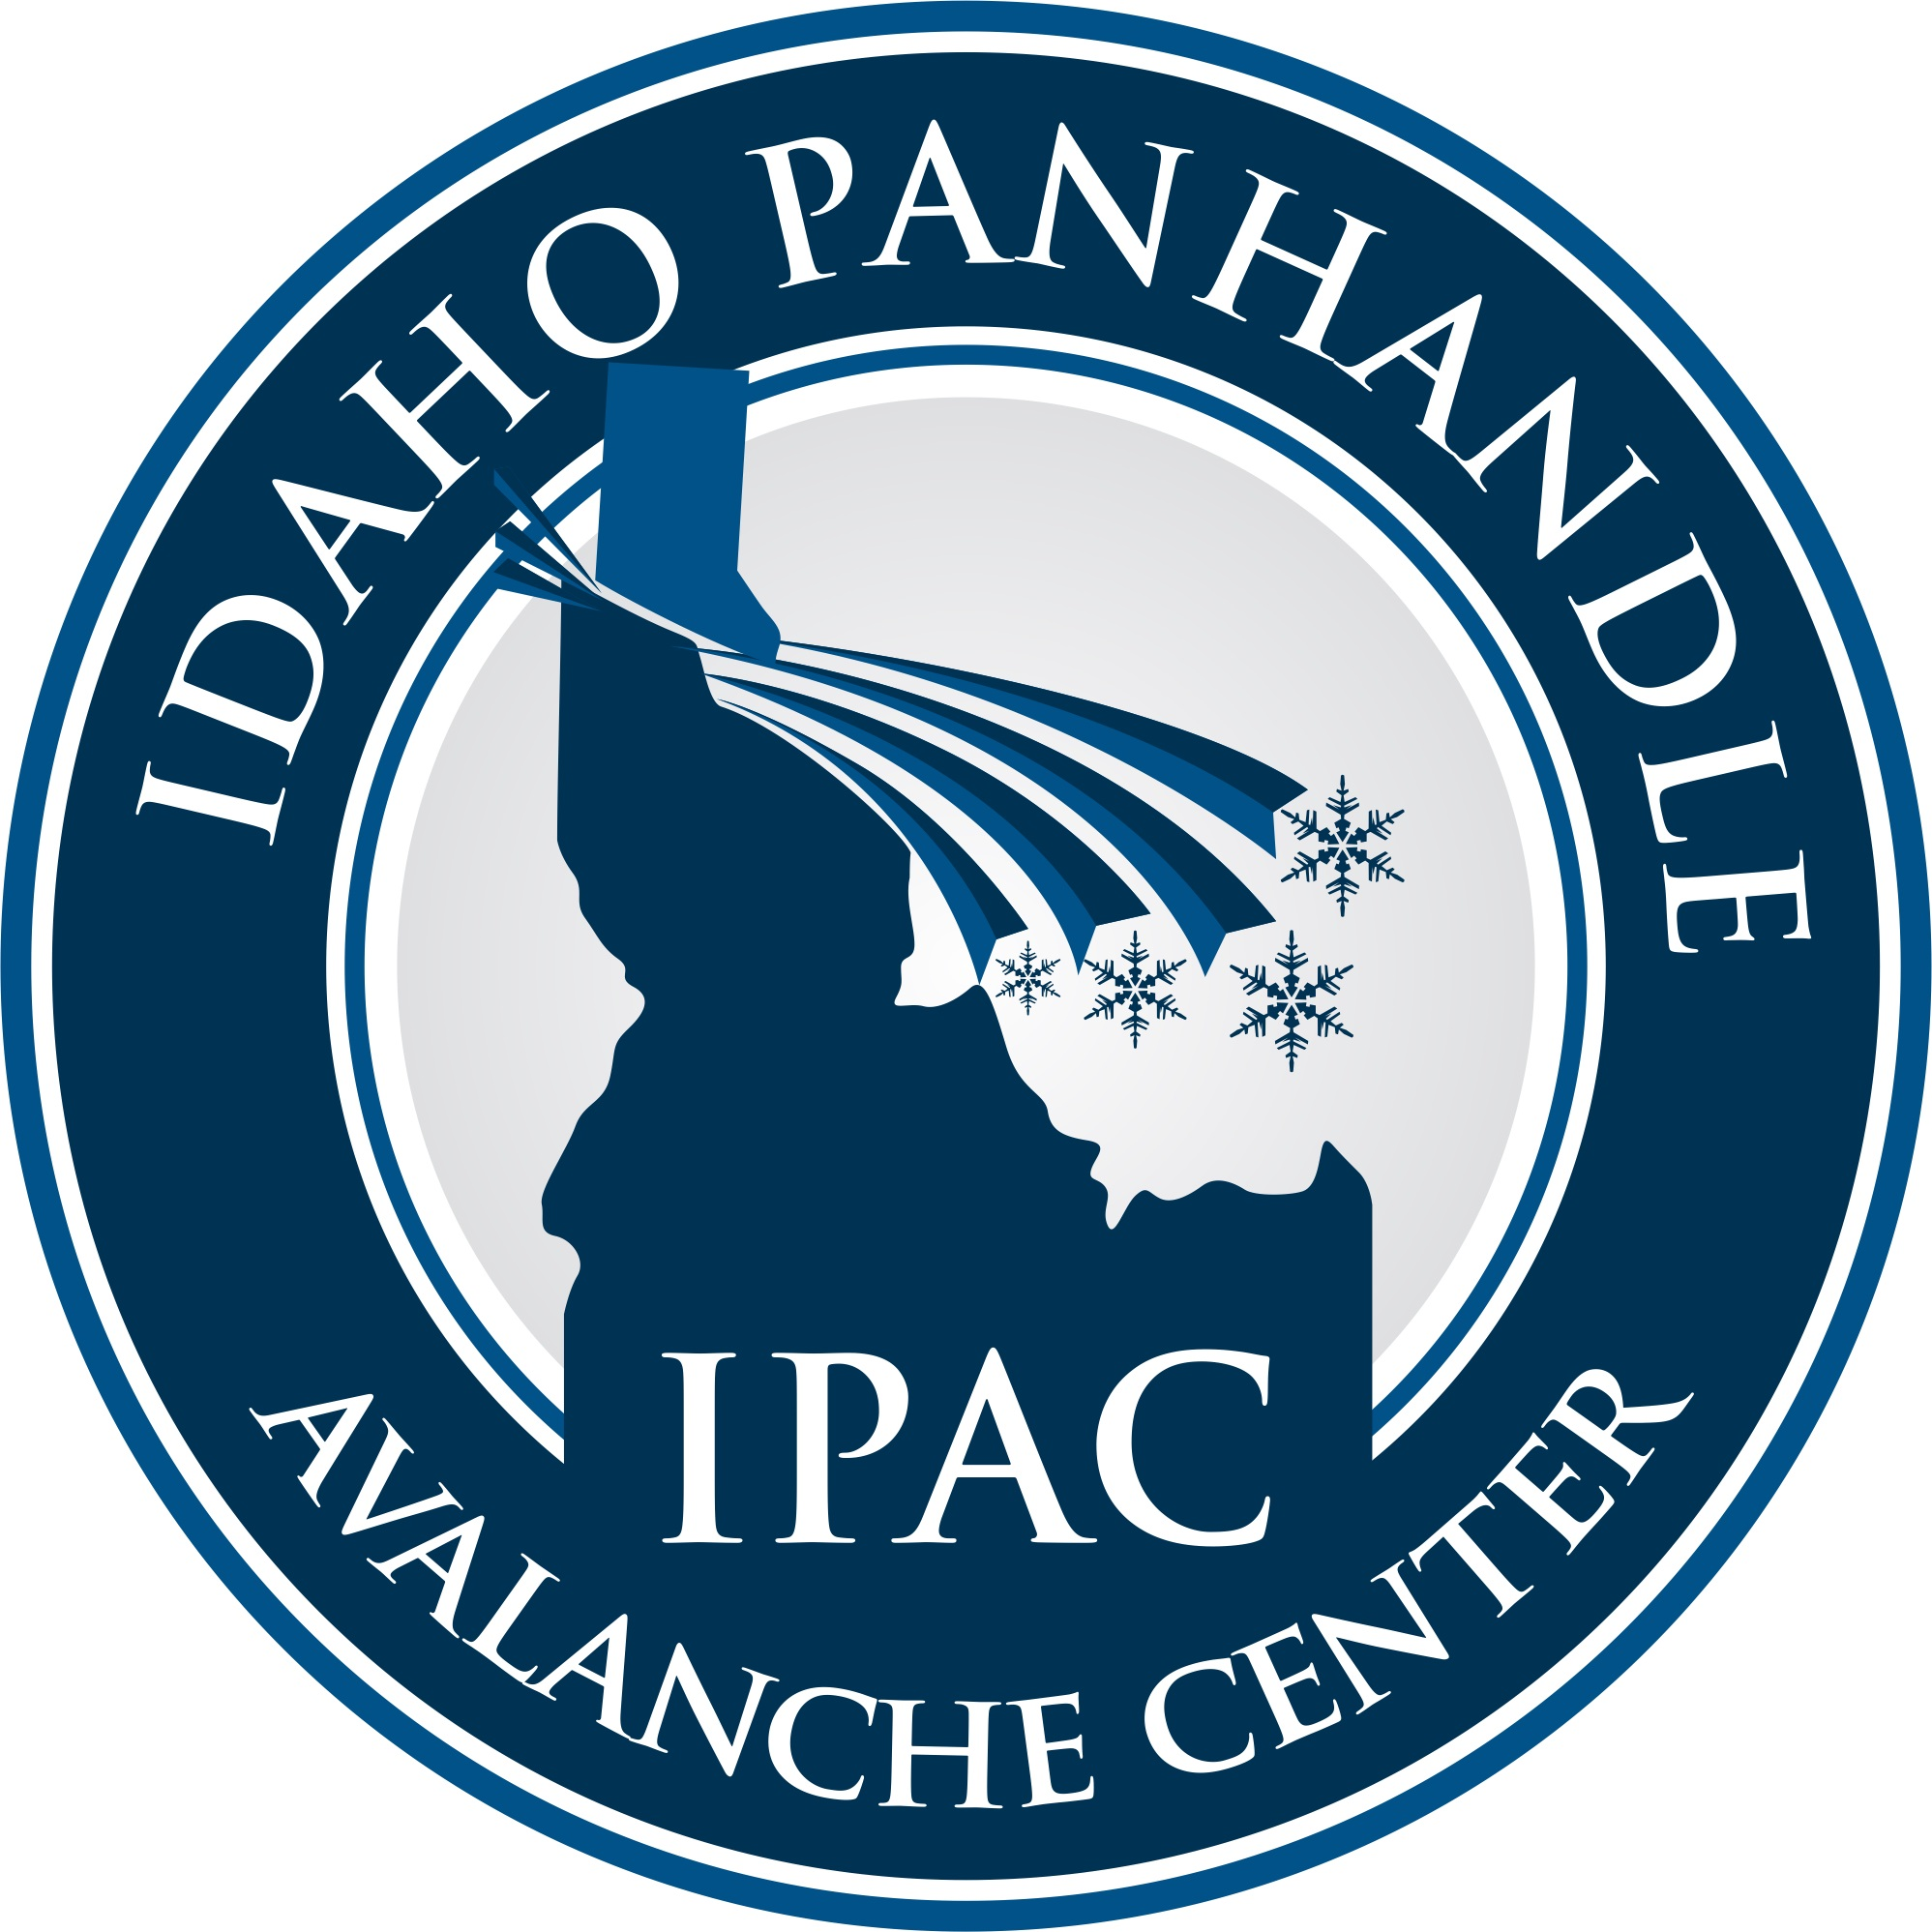 Idaho Panhandle Avalanche Center - For those of us that enjoy venturing out of bounds IPAC is our go to source for Avalanche forecasts. They also provide educational opportunities focused on staying safe in the back country of North Idaho. On December 1st, IPAC's will be at Jack Frost Fest to inform the crowd about the programs they will be offering this winter.